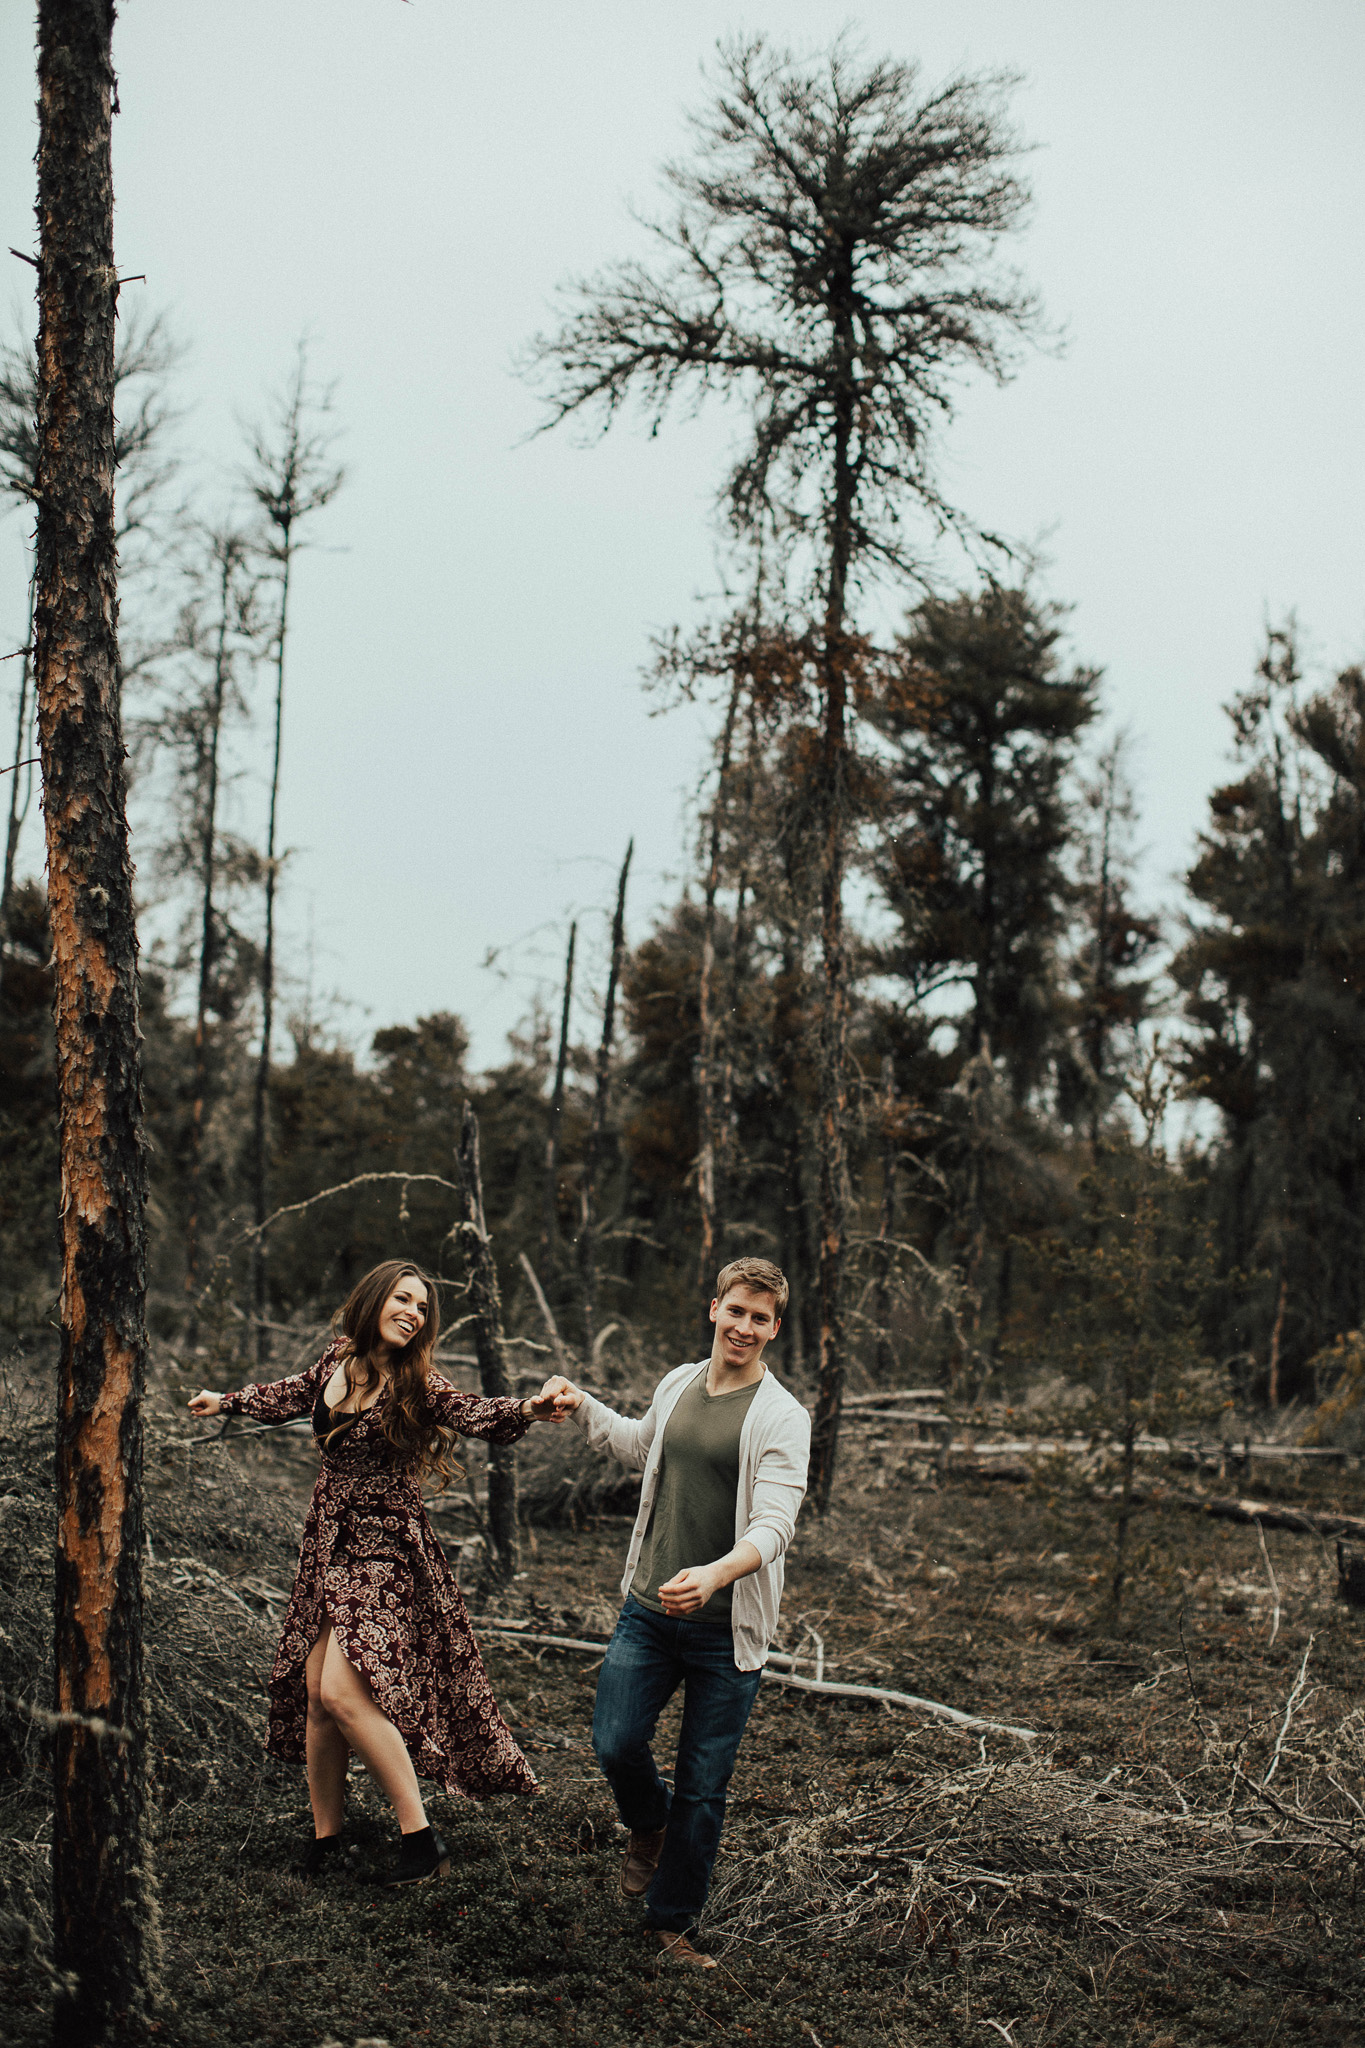 Edmonton Engagement Photographer - Michelle Larmand Photography - Mossy woods engagement session054